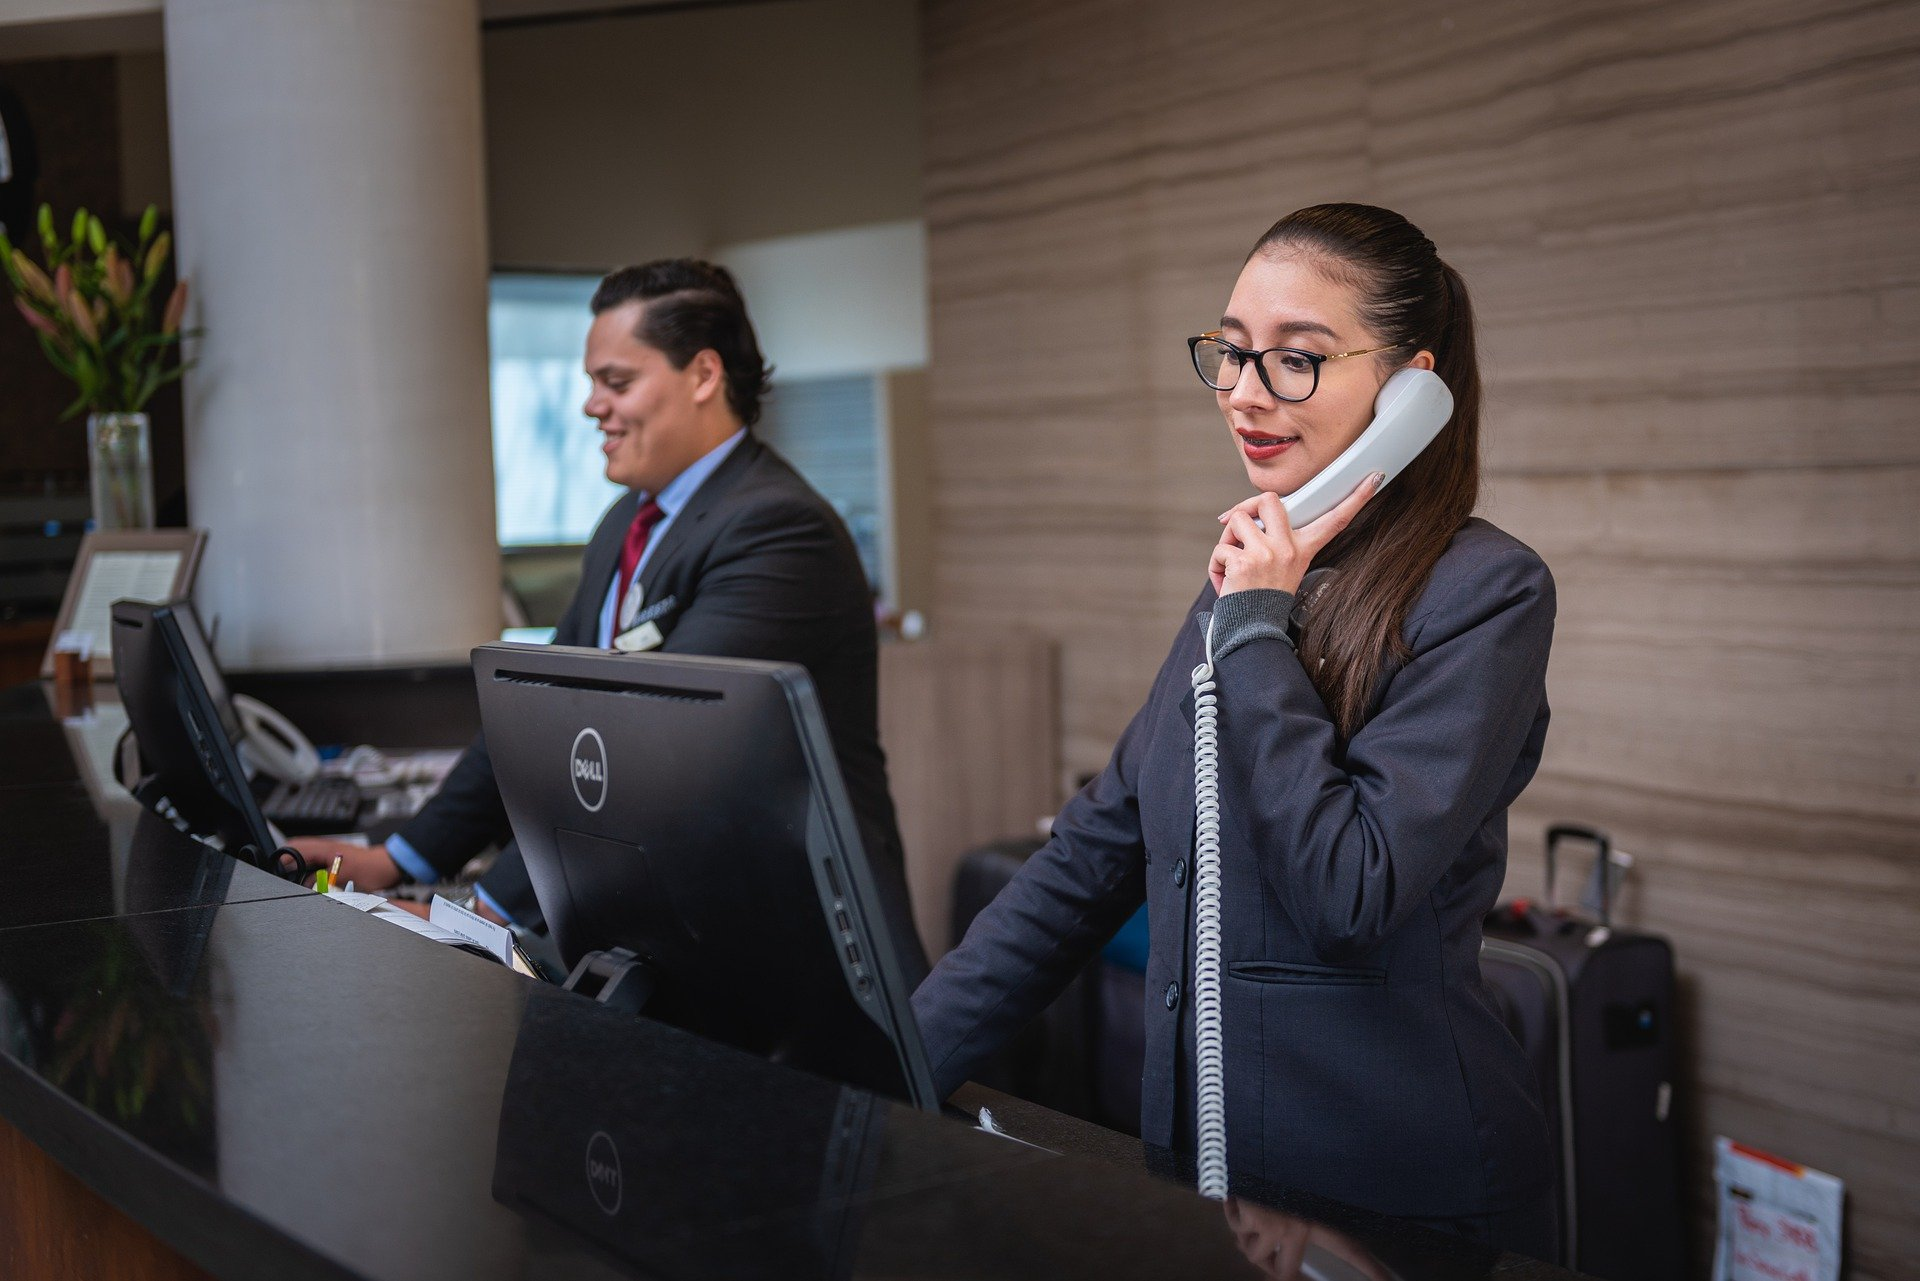 Performing Proactive Customer Service